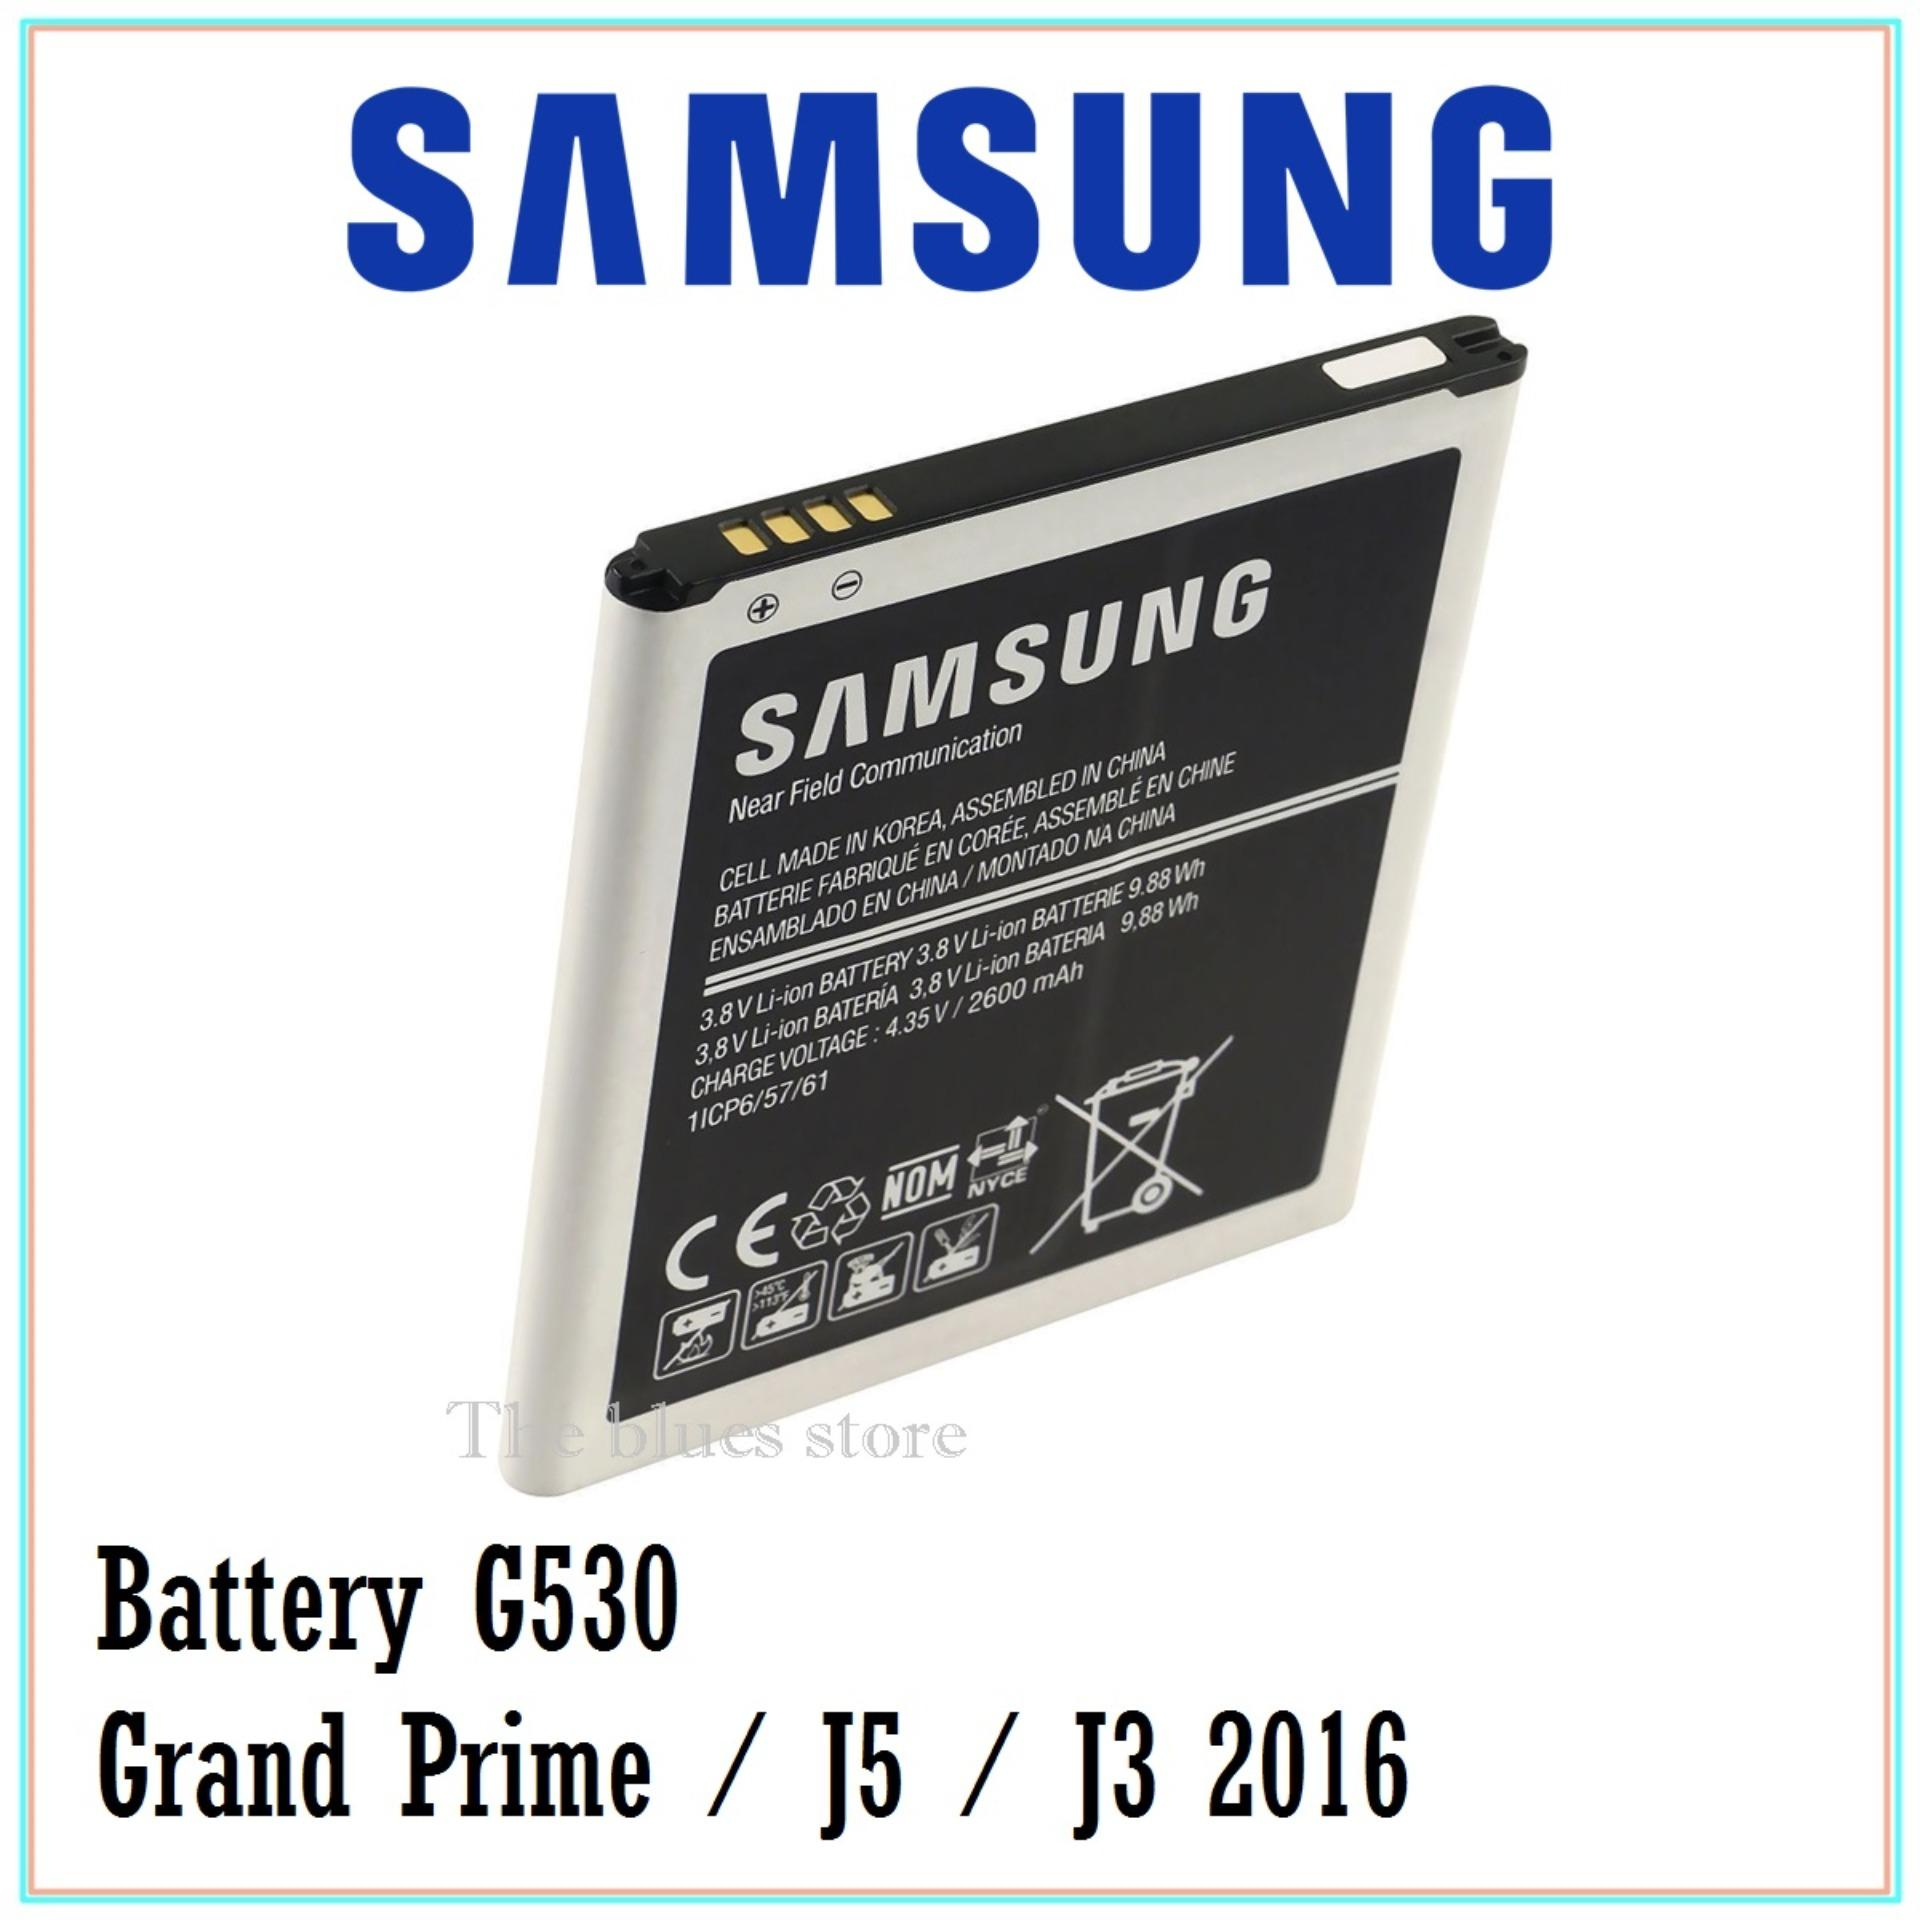 Samsung Baterai SM-G530 (2600mAh) Battery For Galaxy Grand Prime - Original